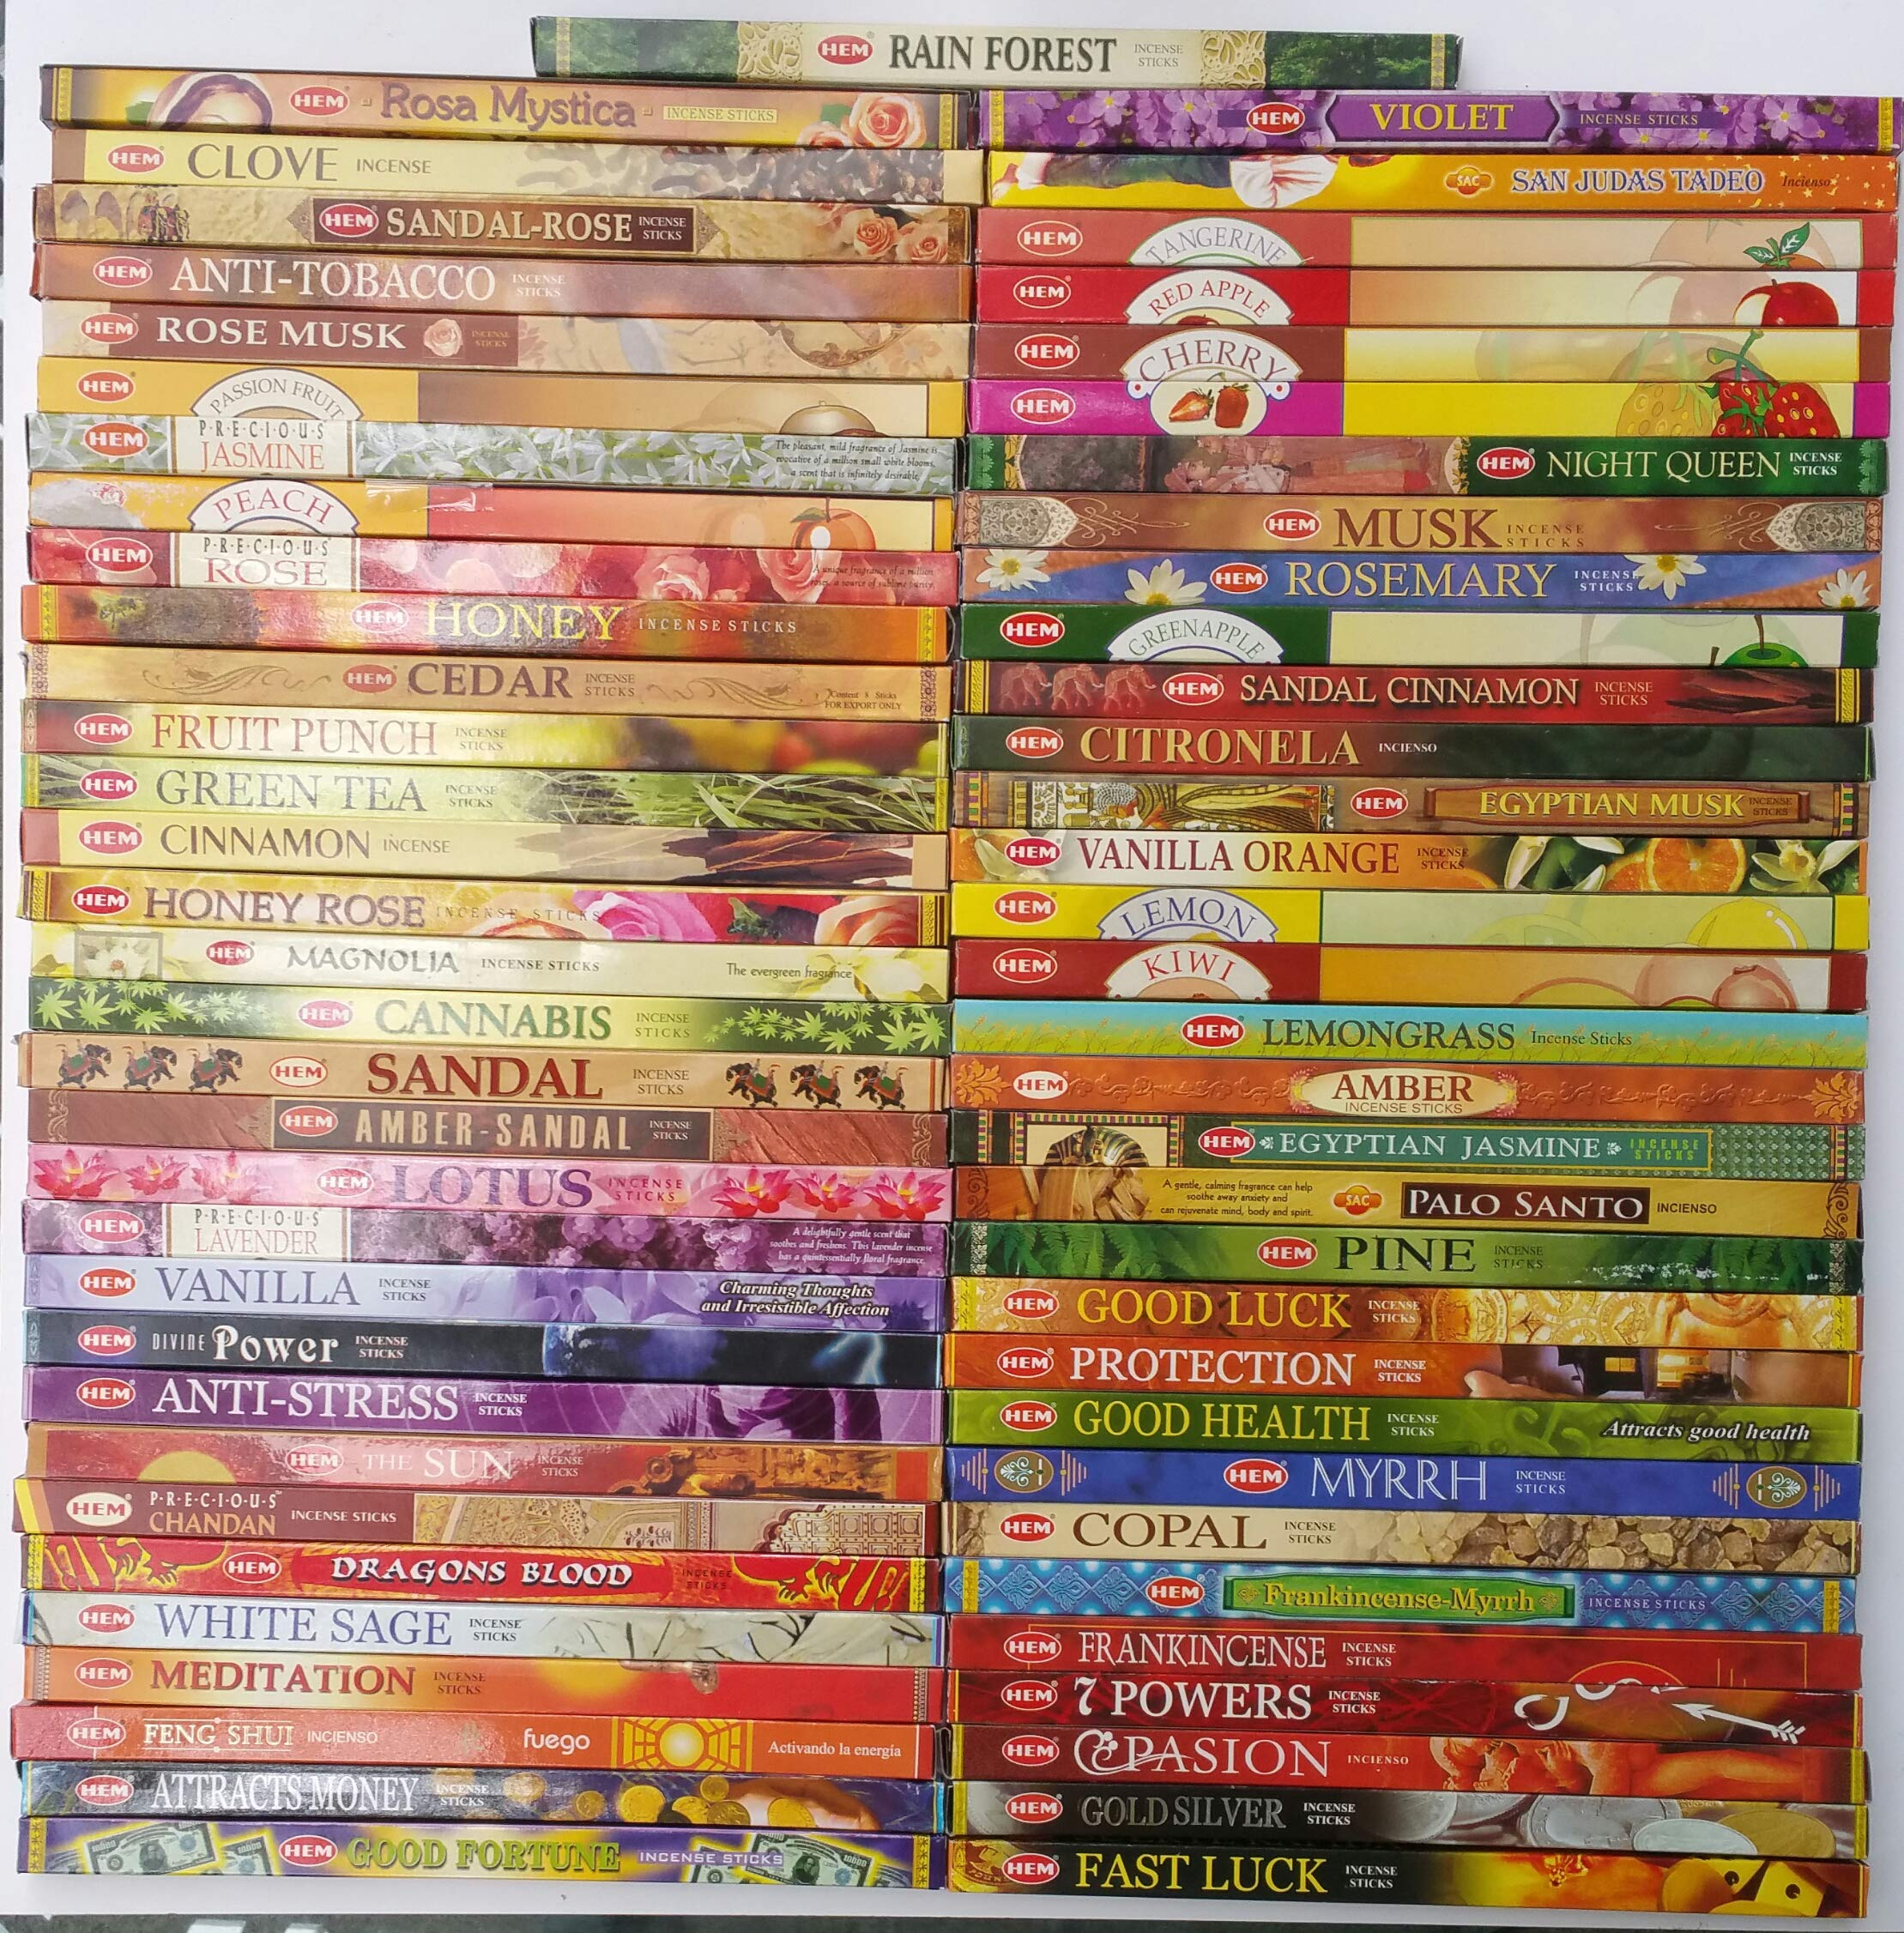 Hem Incense Variety sampler-64 Different scents x 8 Incense Sticks Each Variety, That's Total of 536 Sticks, a Great Inexpensive Way to Try Them All Most Complete Set You'll find Anywhere by The Better Scents